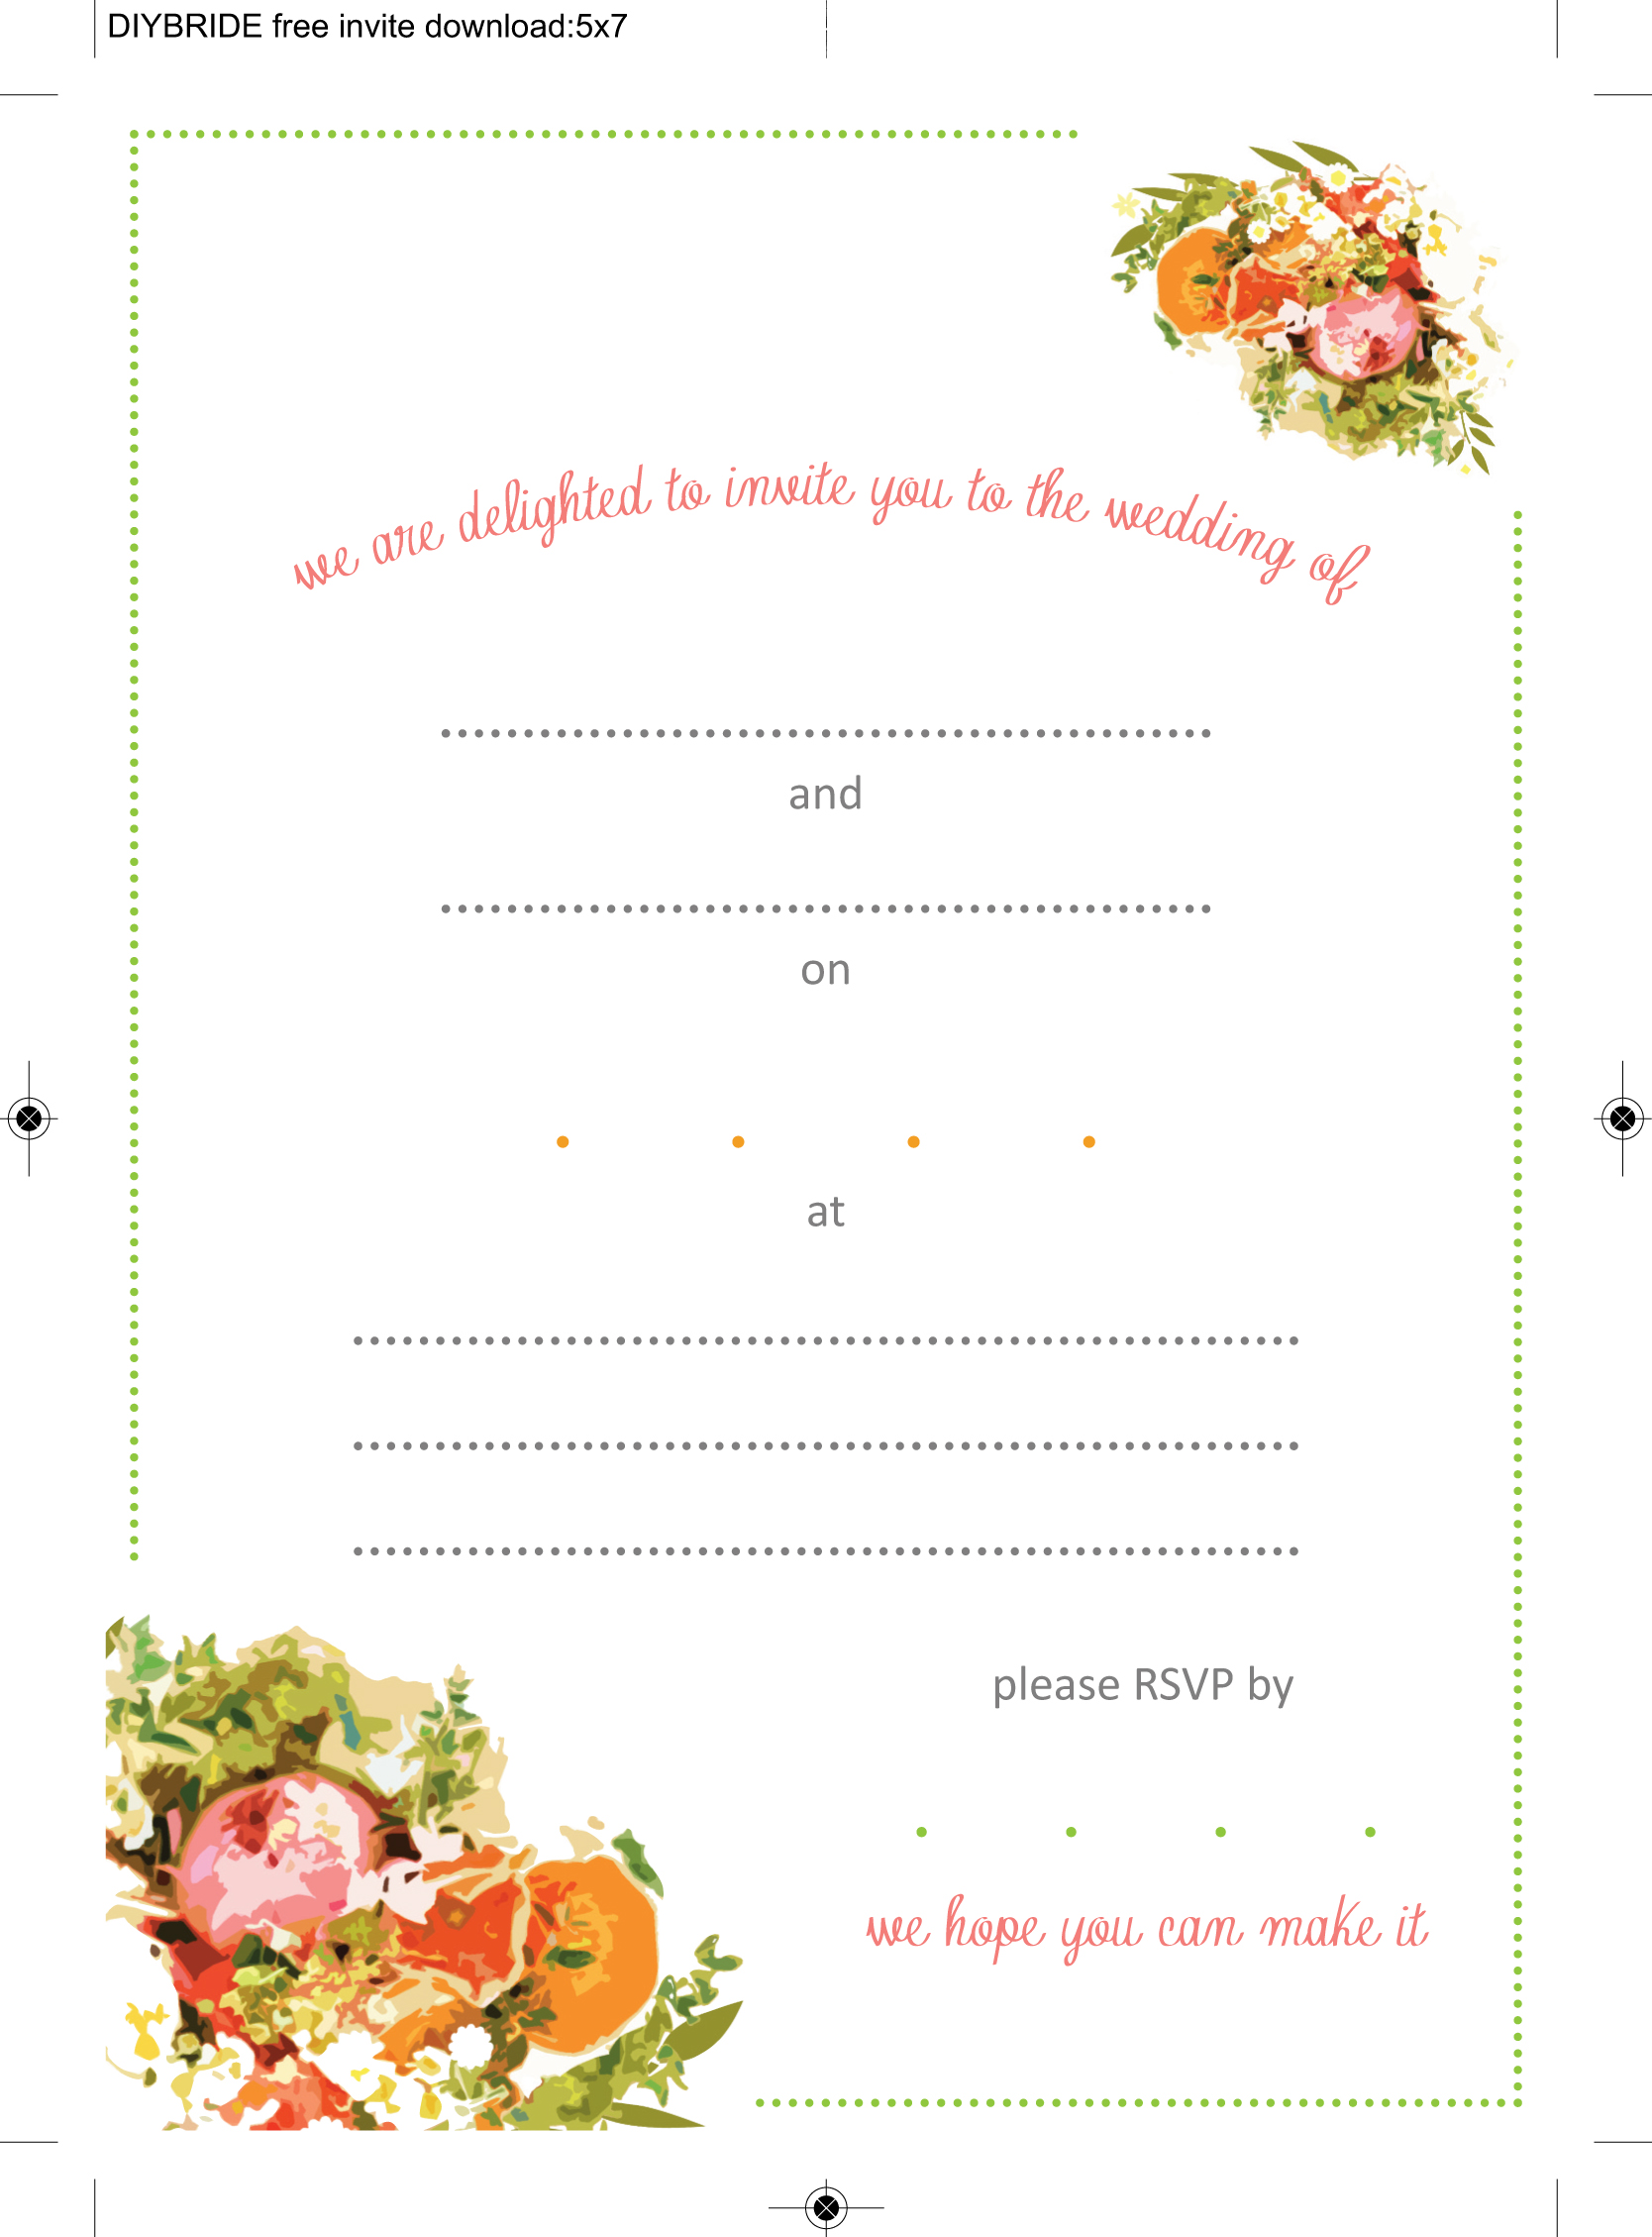 Wedding Invitation Templates That Are Cute And Easy To Make The - Wedding invitation templates: wedding invitation template download and print